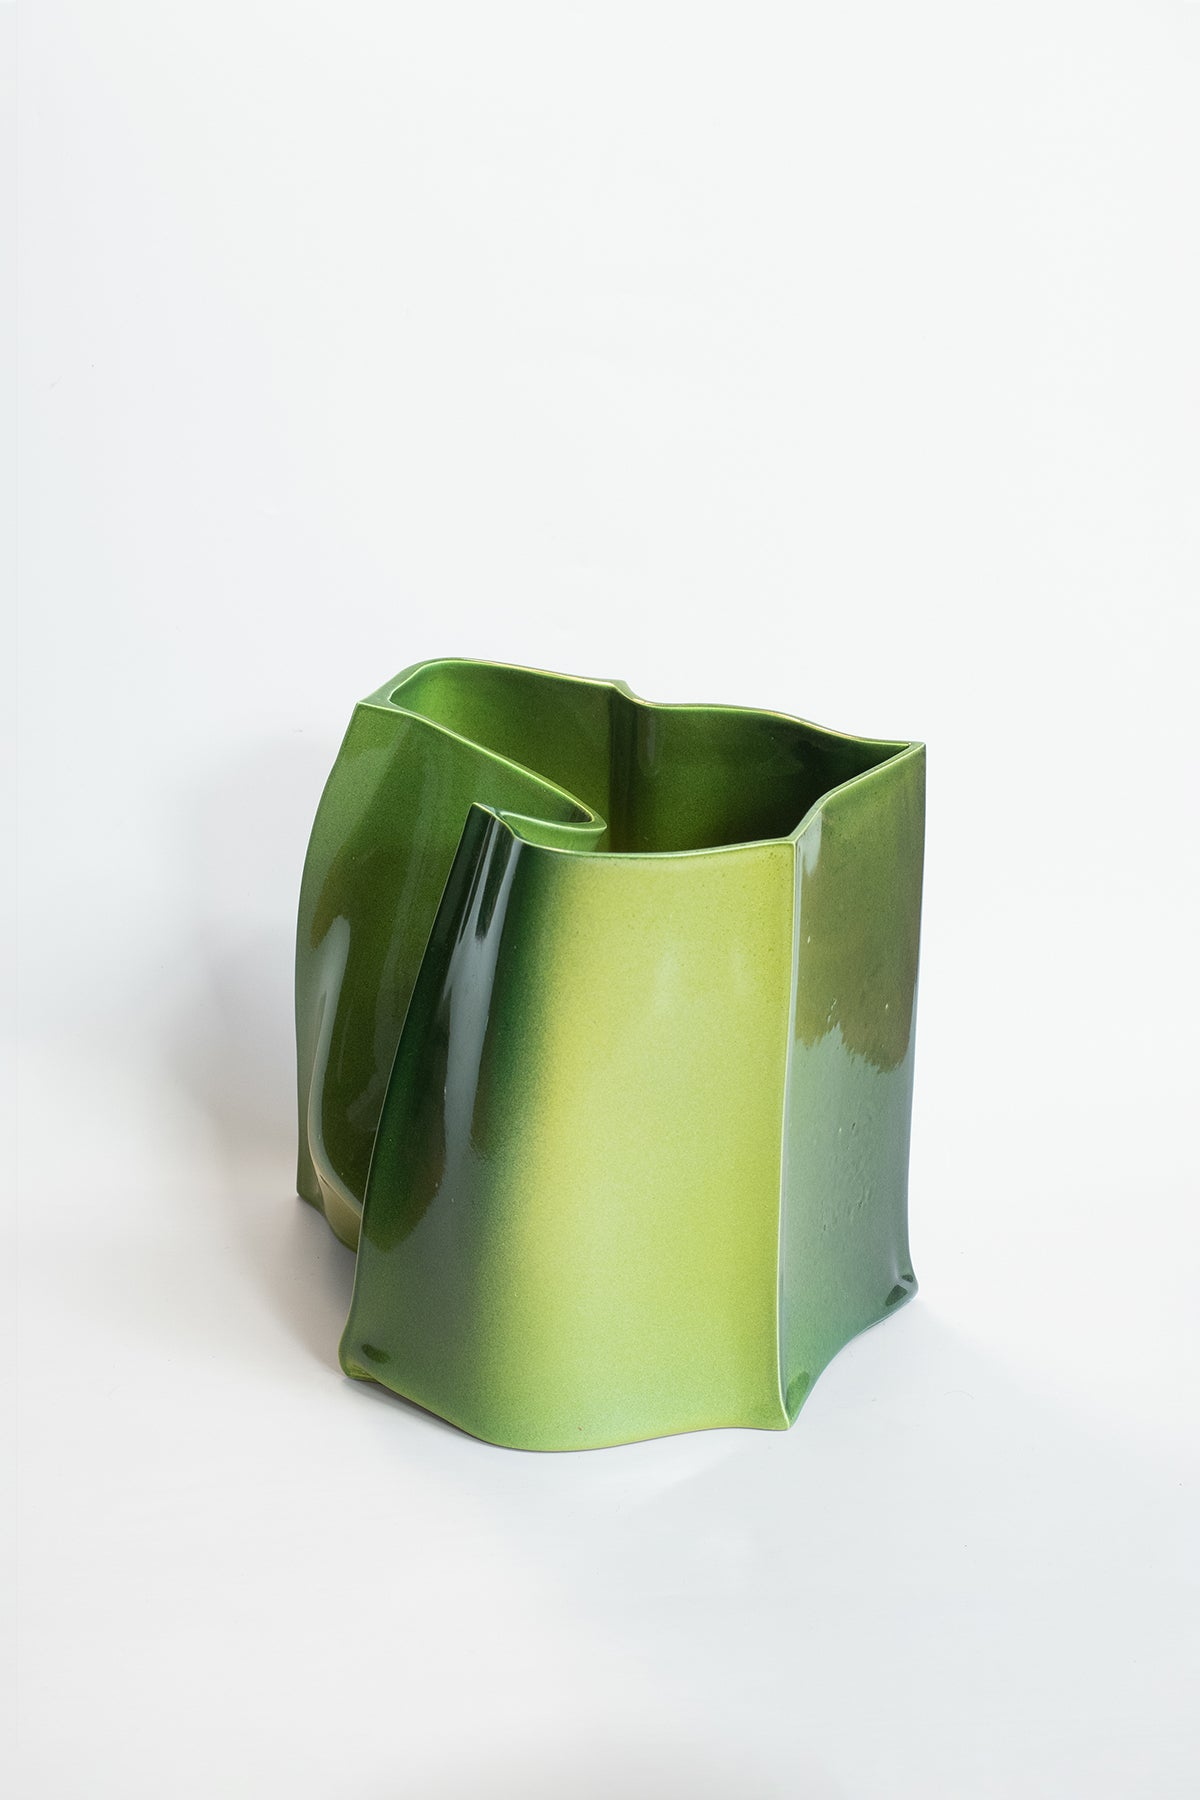 BTM Ceramic Vase Sculpture-50m London